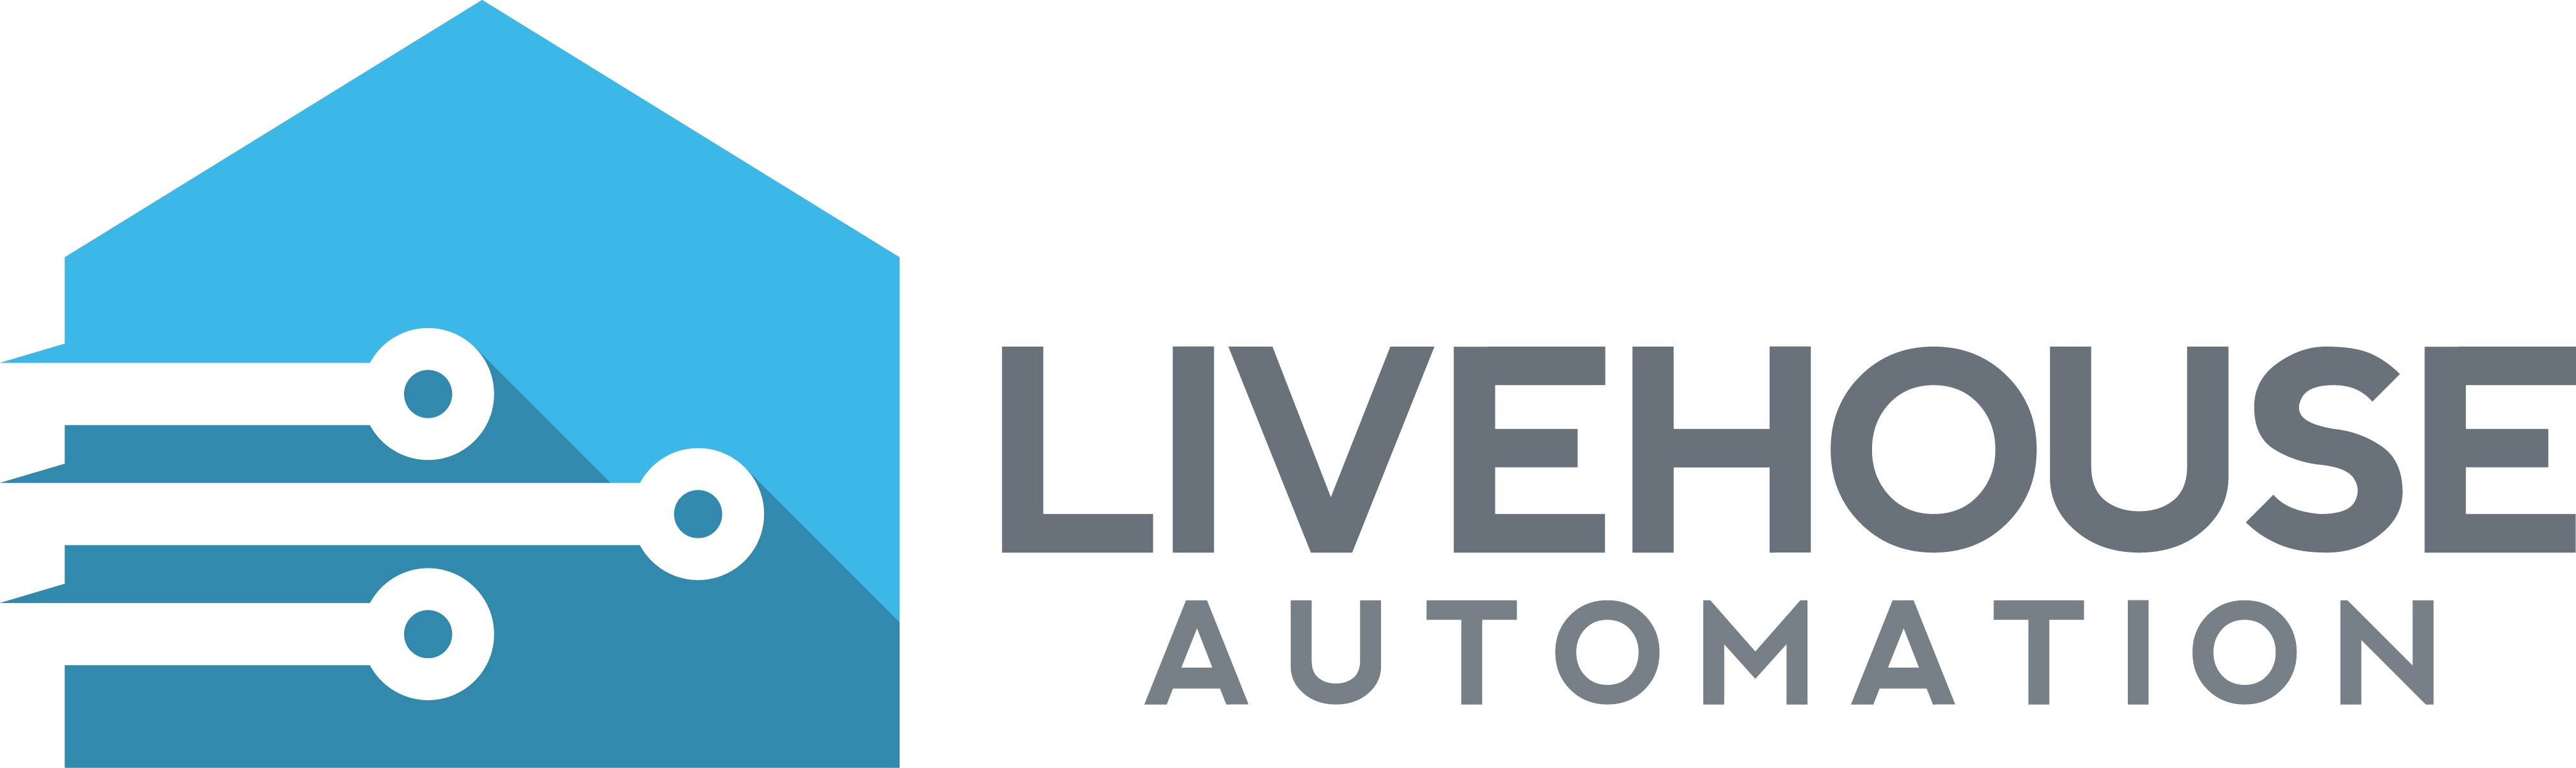 LiveHouse Automation provides a range of products for the DIY enthusiast, self installation kits or fully designed Home Automation solutions.